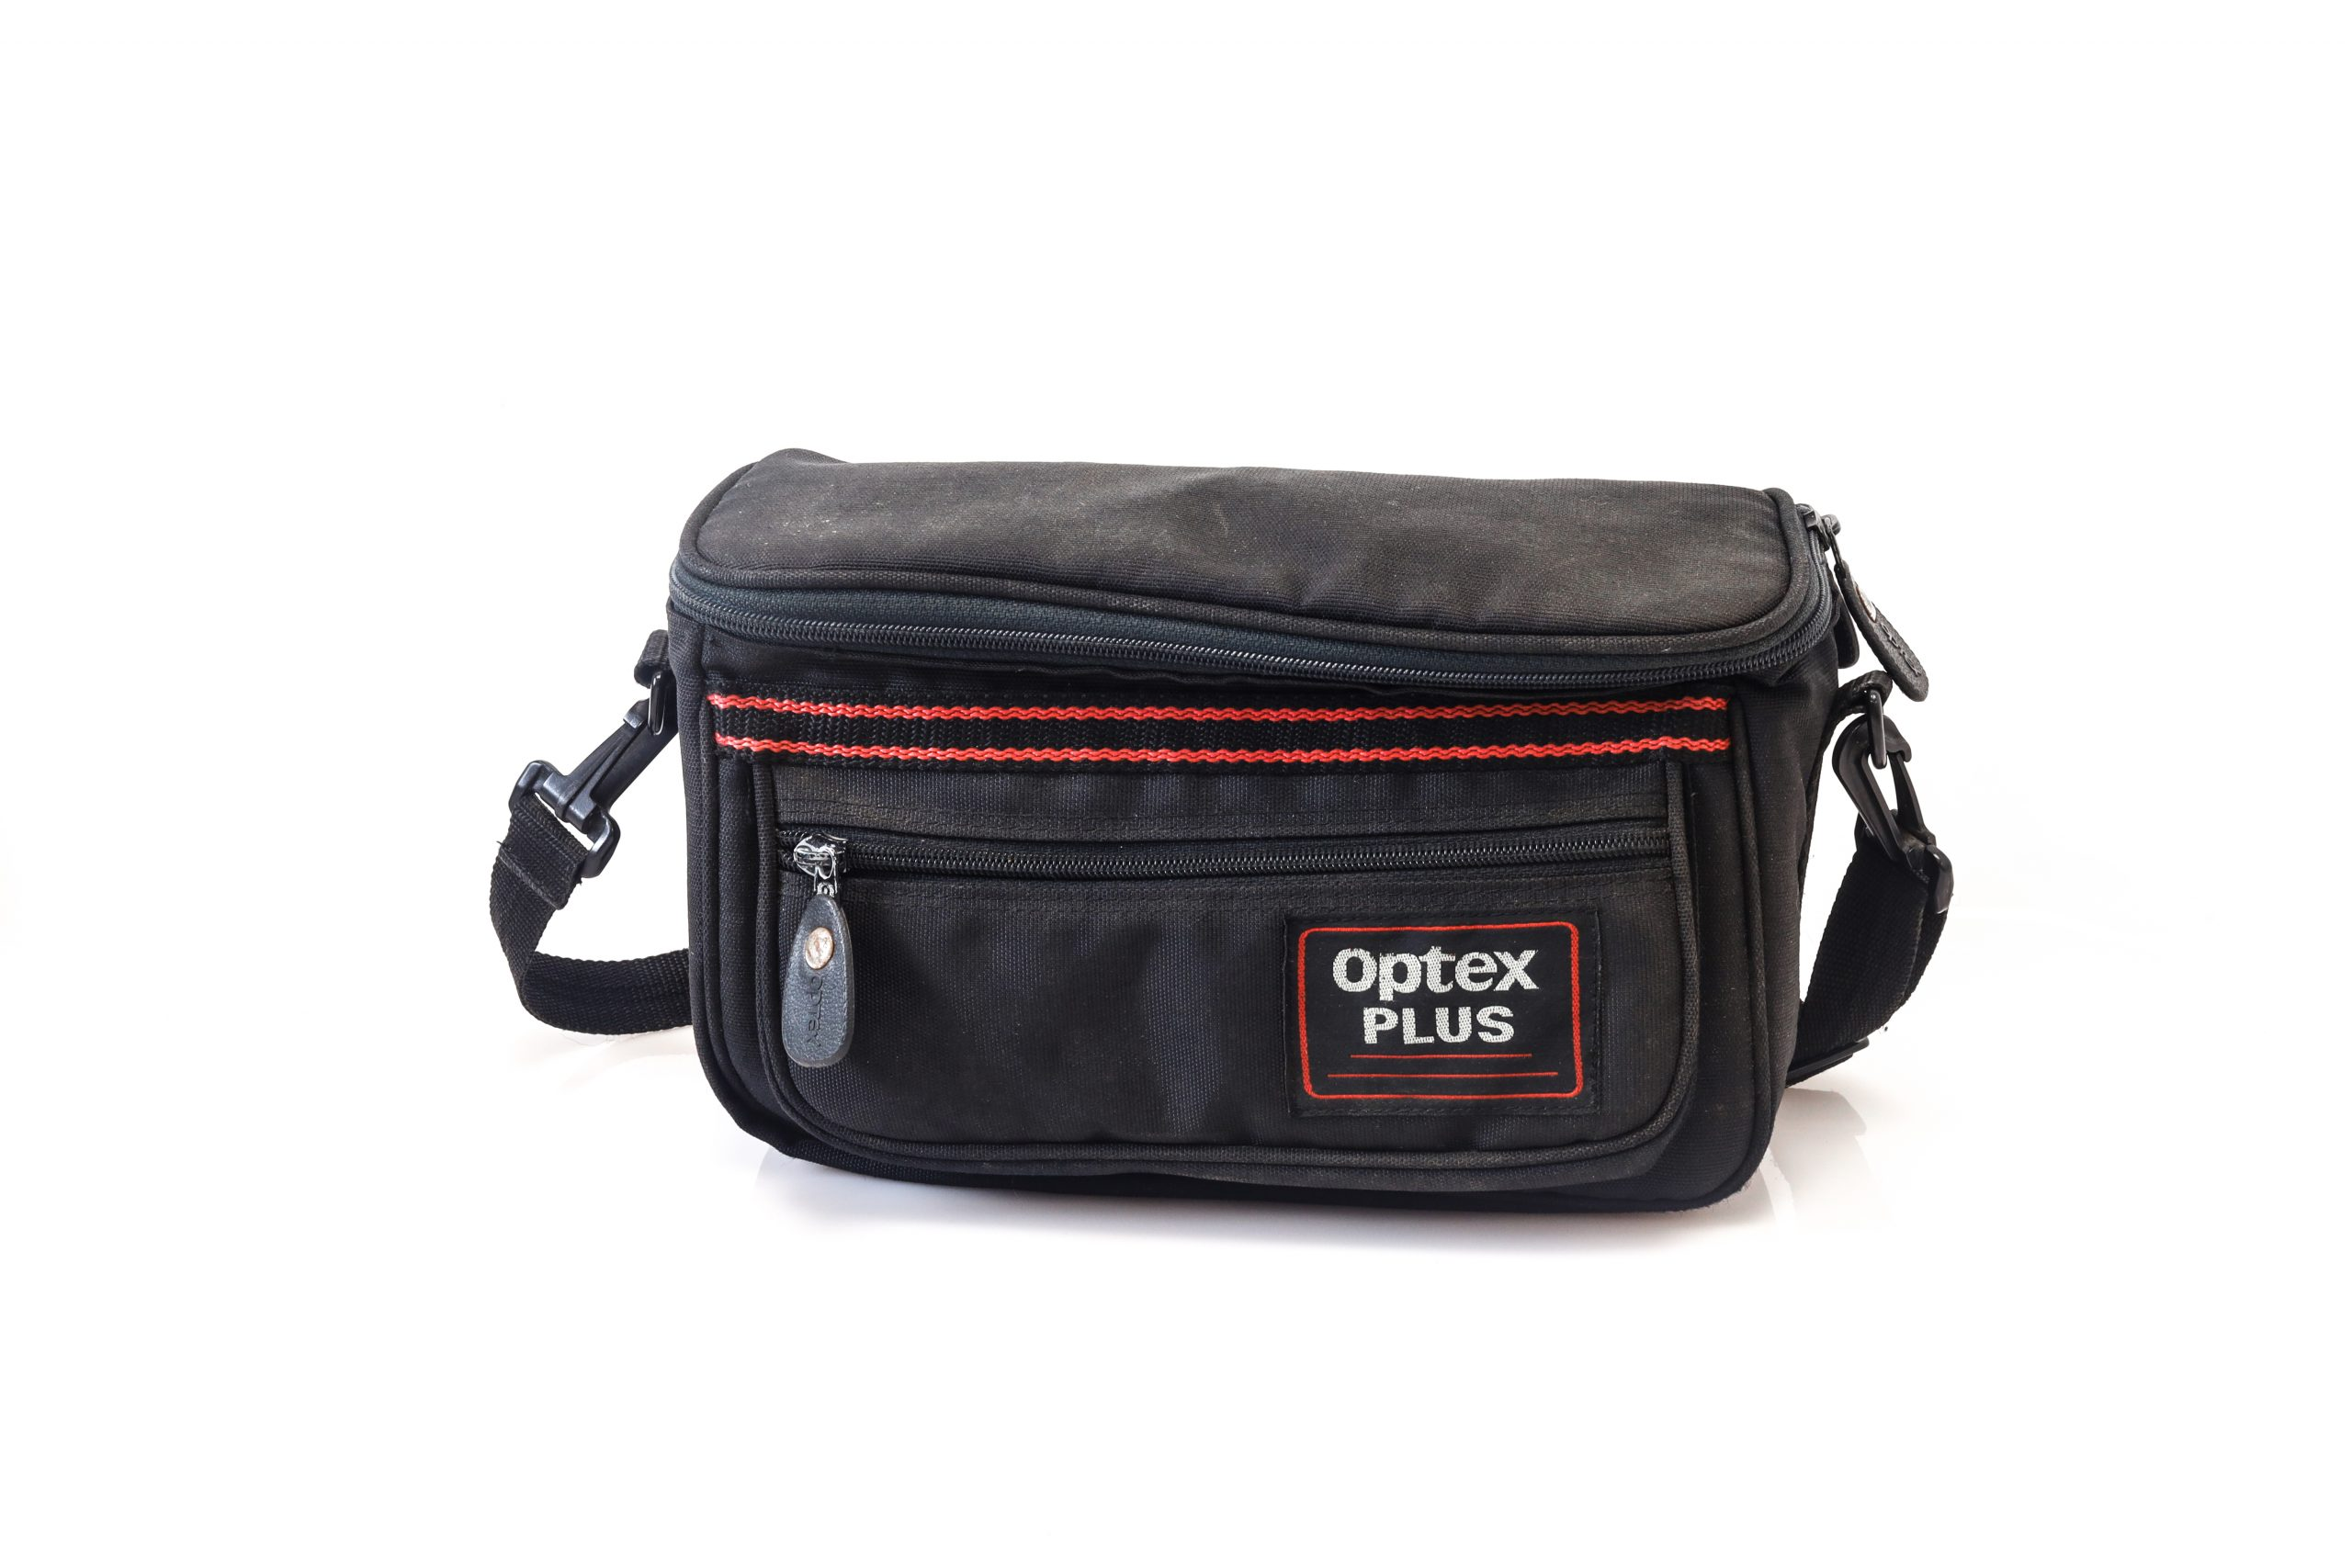 Fantastic Optex Plus Retro Camera Bag